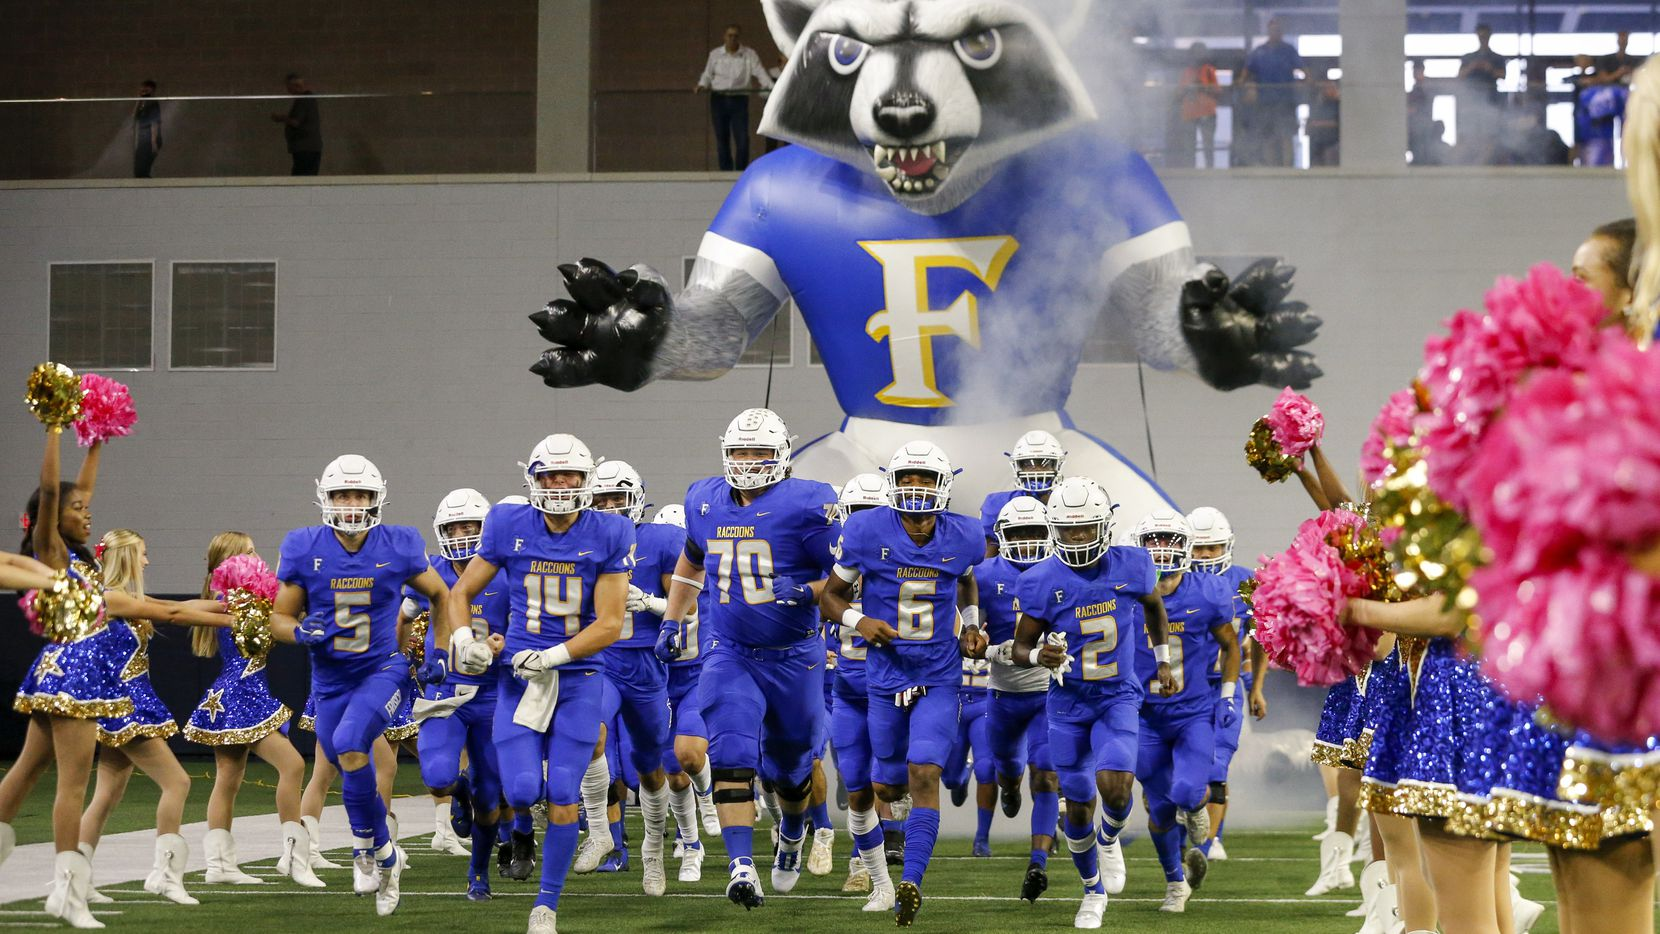 The Frisco football team takes the field before the first half of a high school football game against Frisco Liberty at The Ford Center on Friday, Oct. 1, 2021, in Frisco, Texas. (Elias Valverde II/The Dallas Morning News)